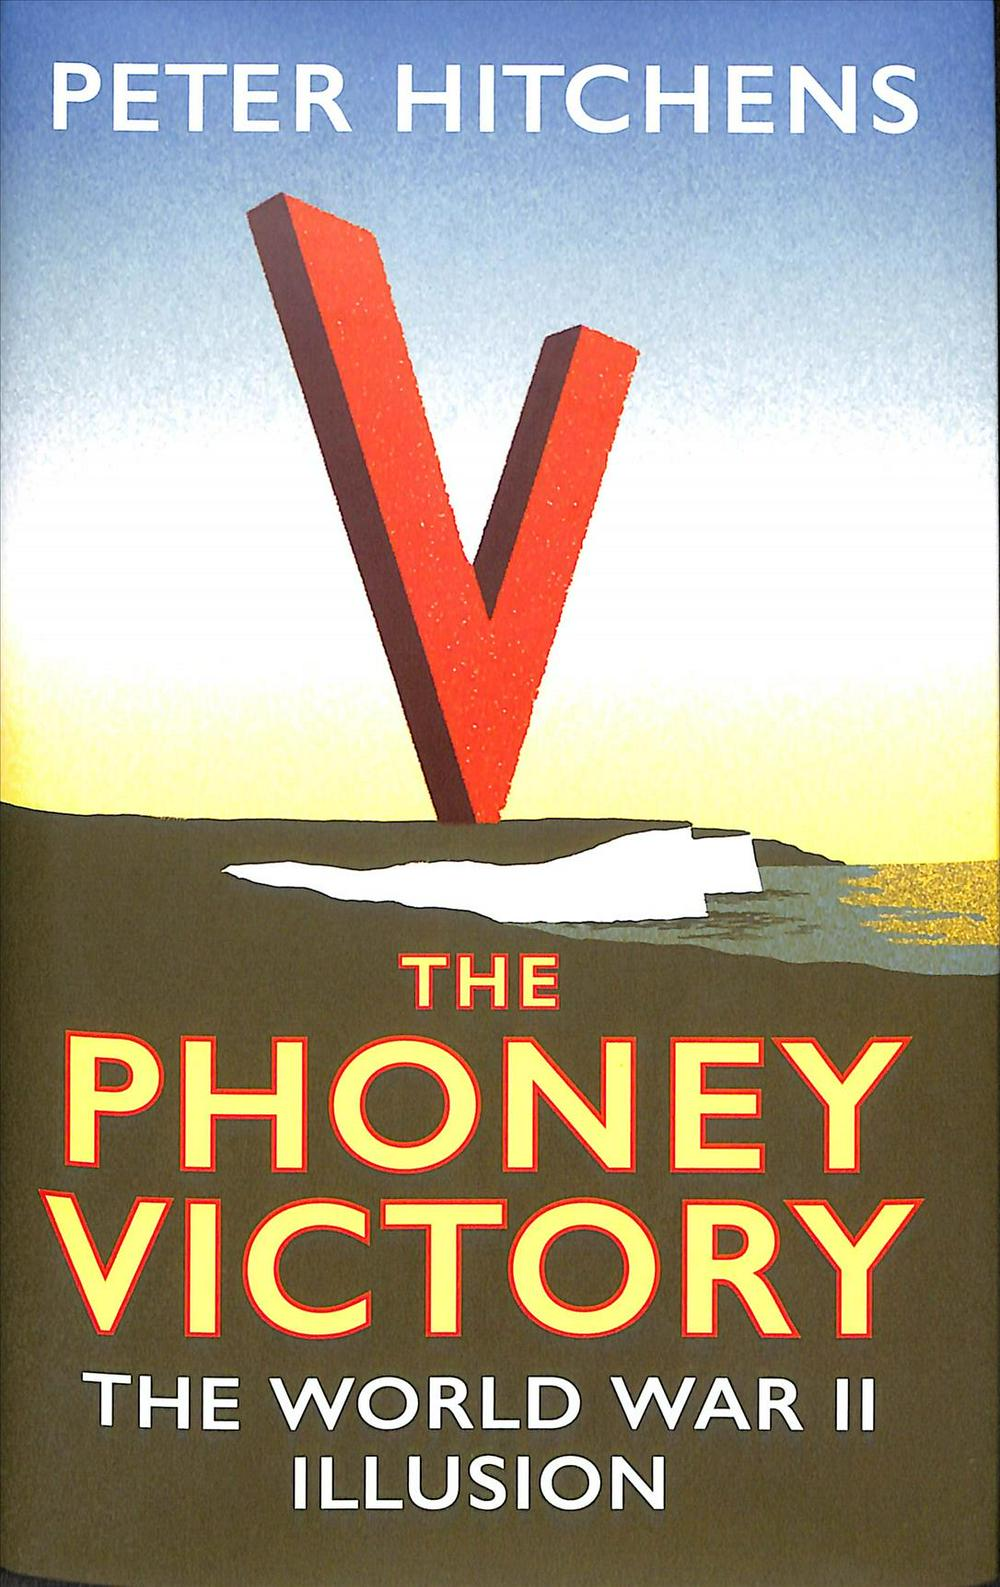 The Phoney Victory: The World War II Delusion by Peter Hitchens, ISBN: 9781788313292